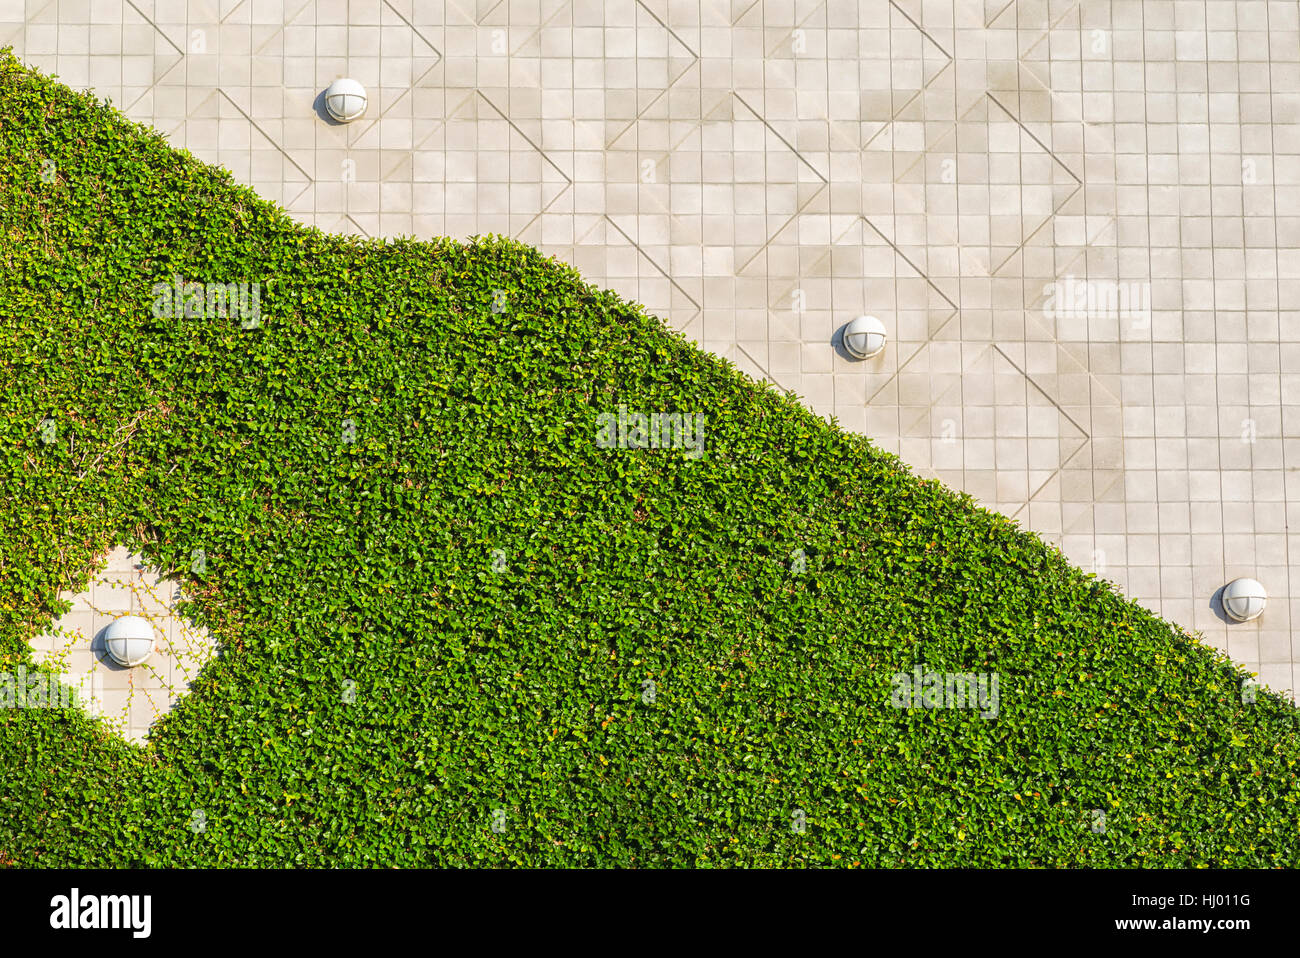 Ivy covered wall, concrete wall with light fixtures, urban geometry. - Stock Image